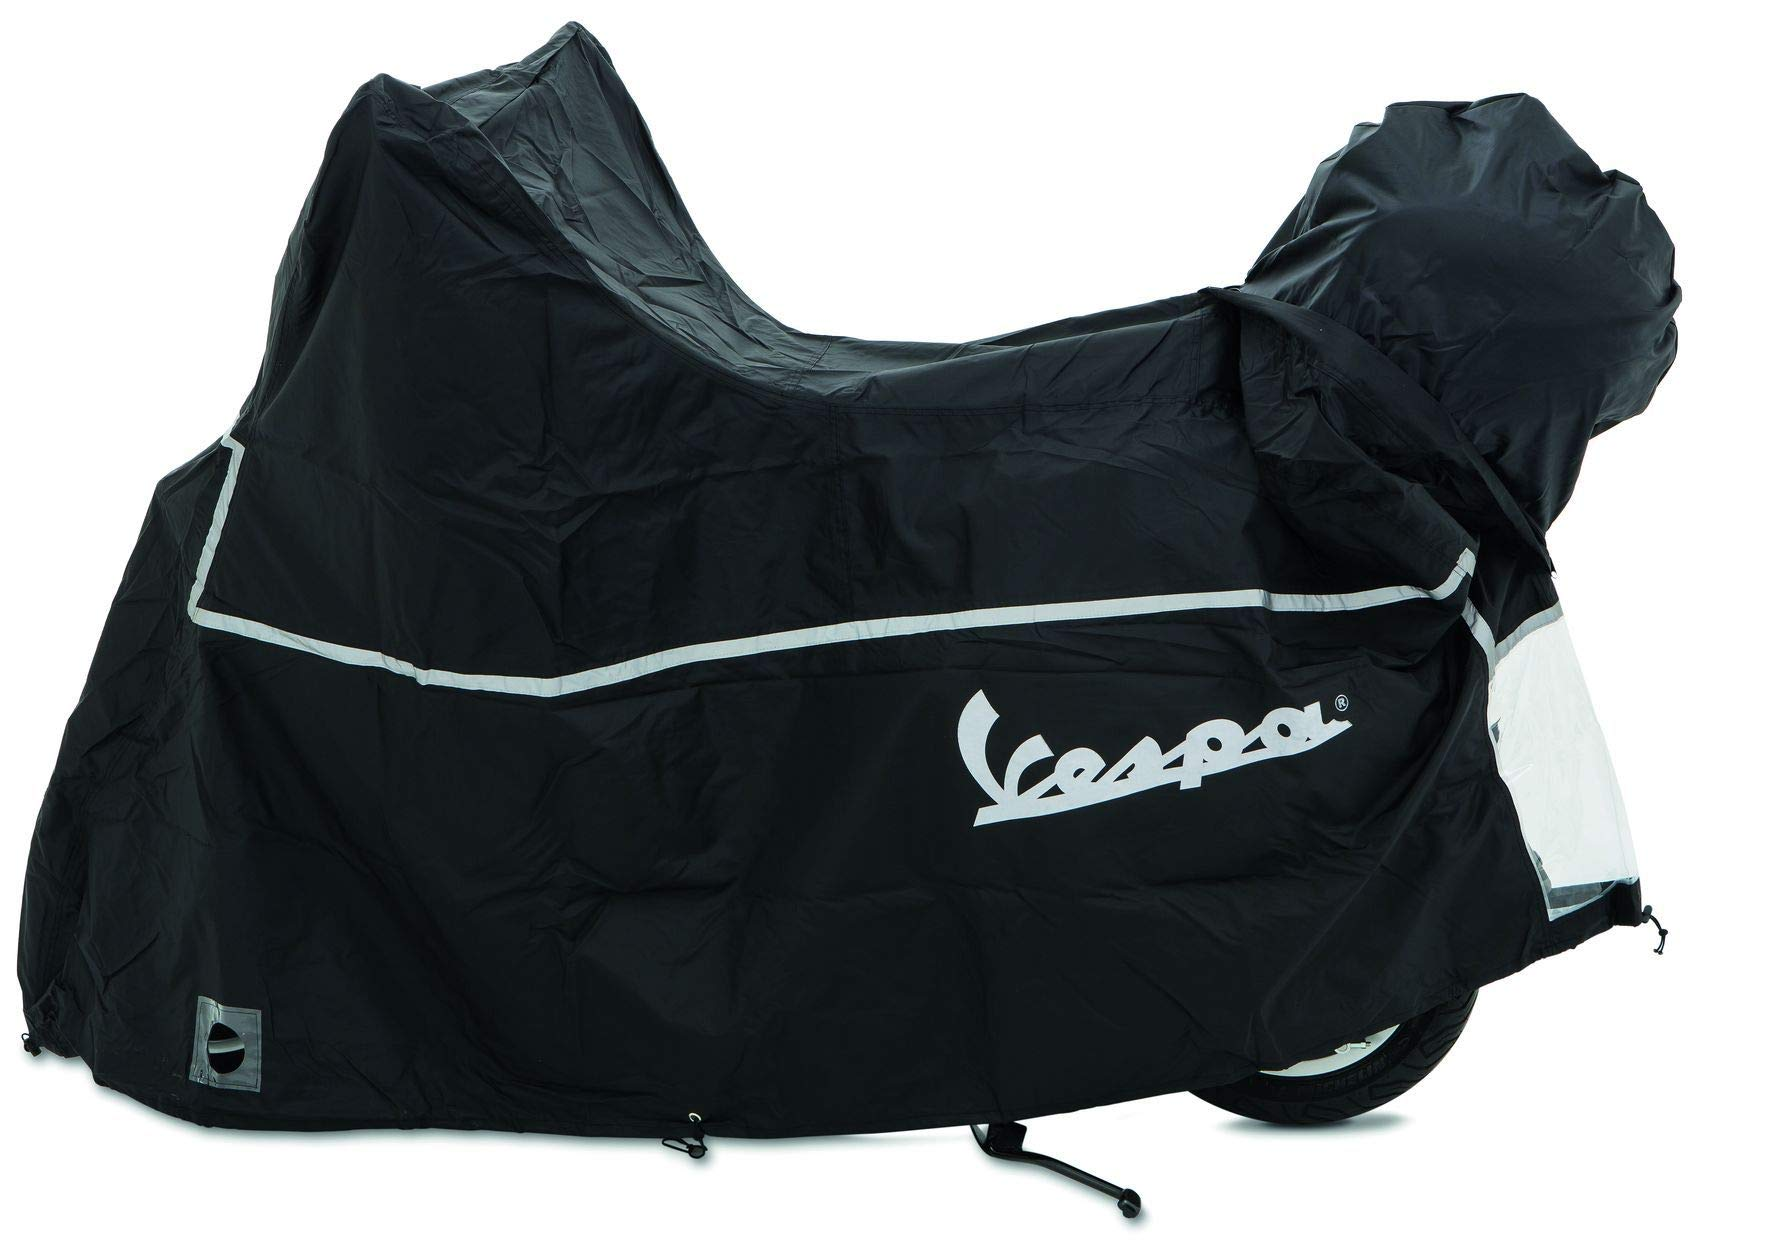 OEM Original Piaggio Vespa Scooter Cover with Top Case Waterproof Outdoor - size XL for Vespa Gt Gts Super Gtv Gt60 125cc 250cc 300cc All Weather Scooter Garage by Vespa